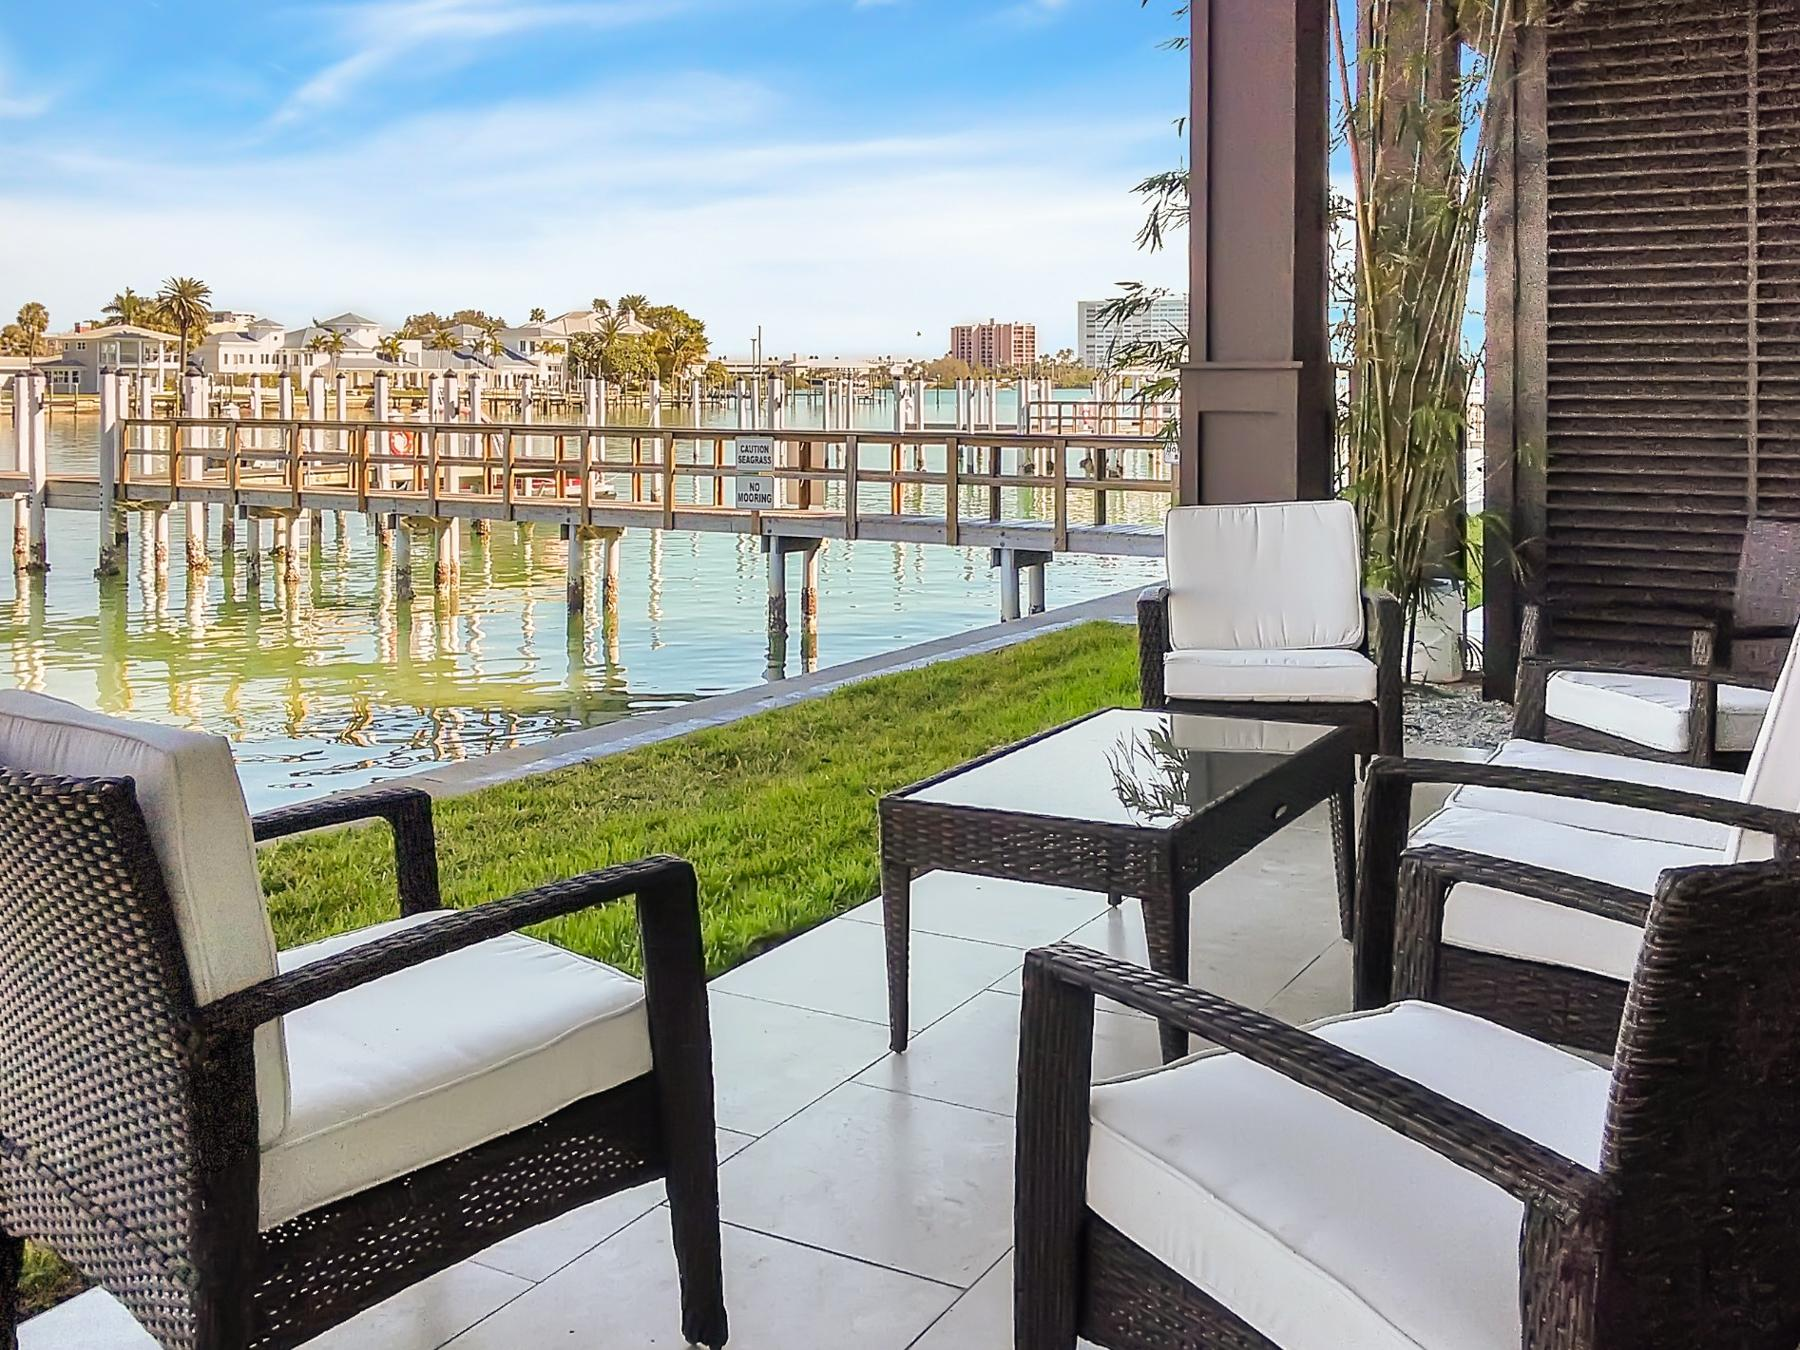 Relax on the waterfront patio with lounge seating for 6. Enjoy access to the private dock.